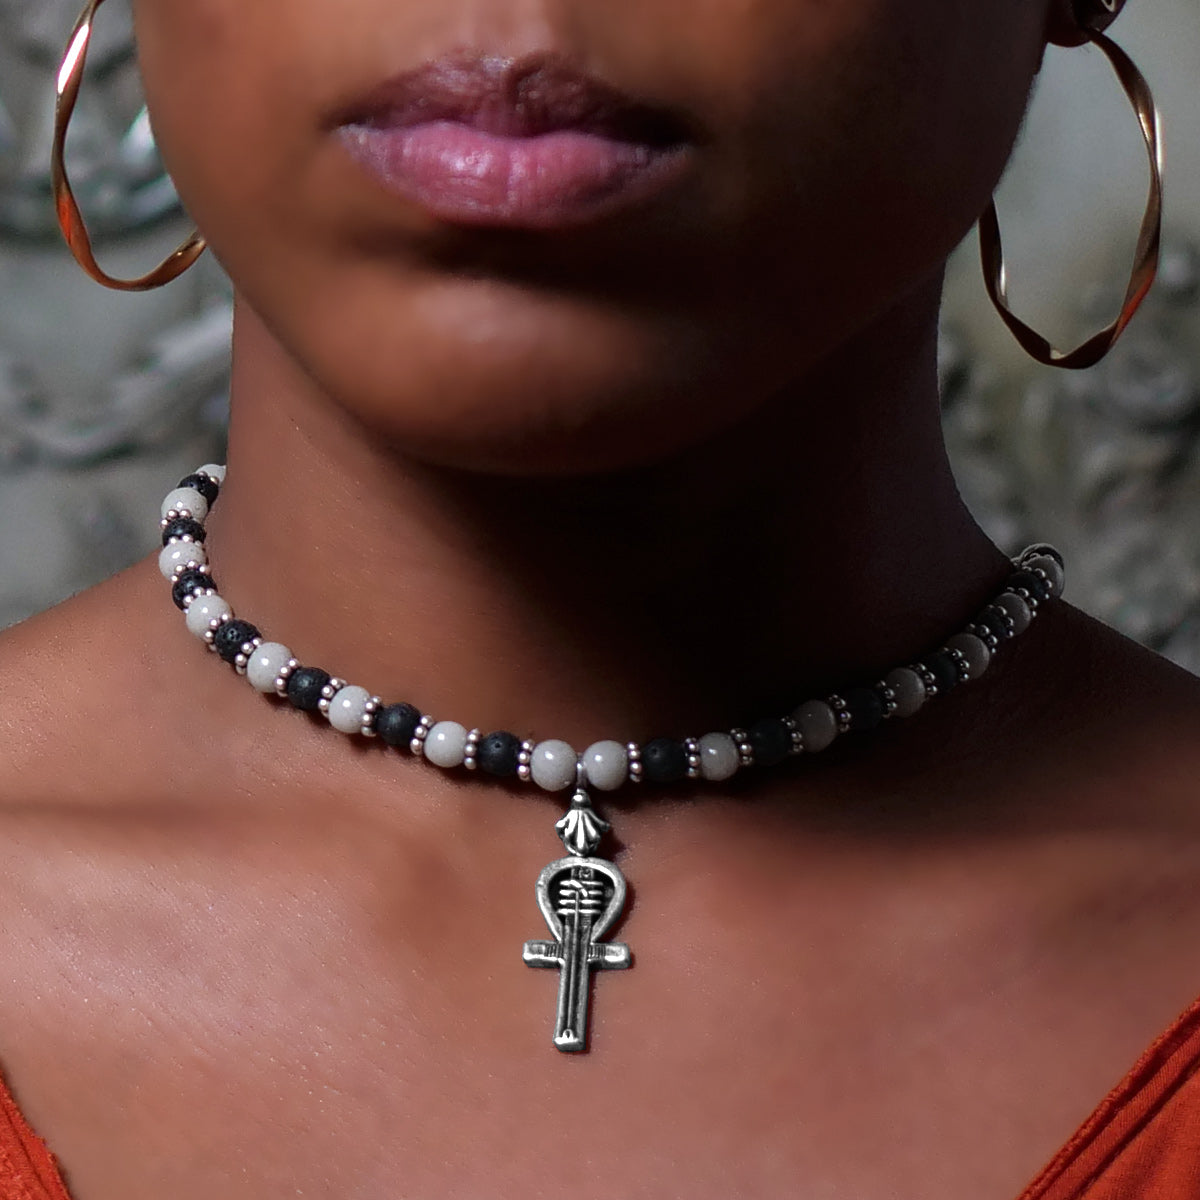 Women's Necklace in Ivory Tone Faience with Matte Black Lava - Em Hotep Collection